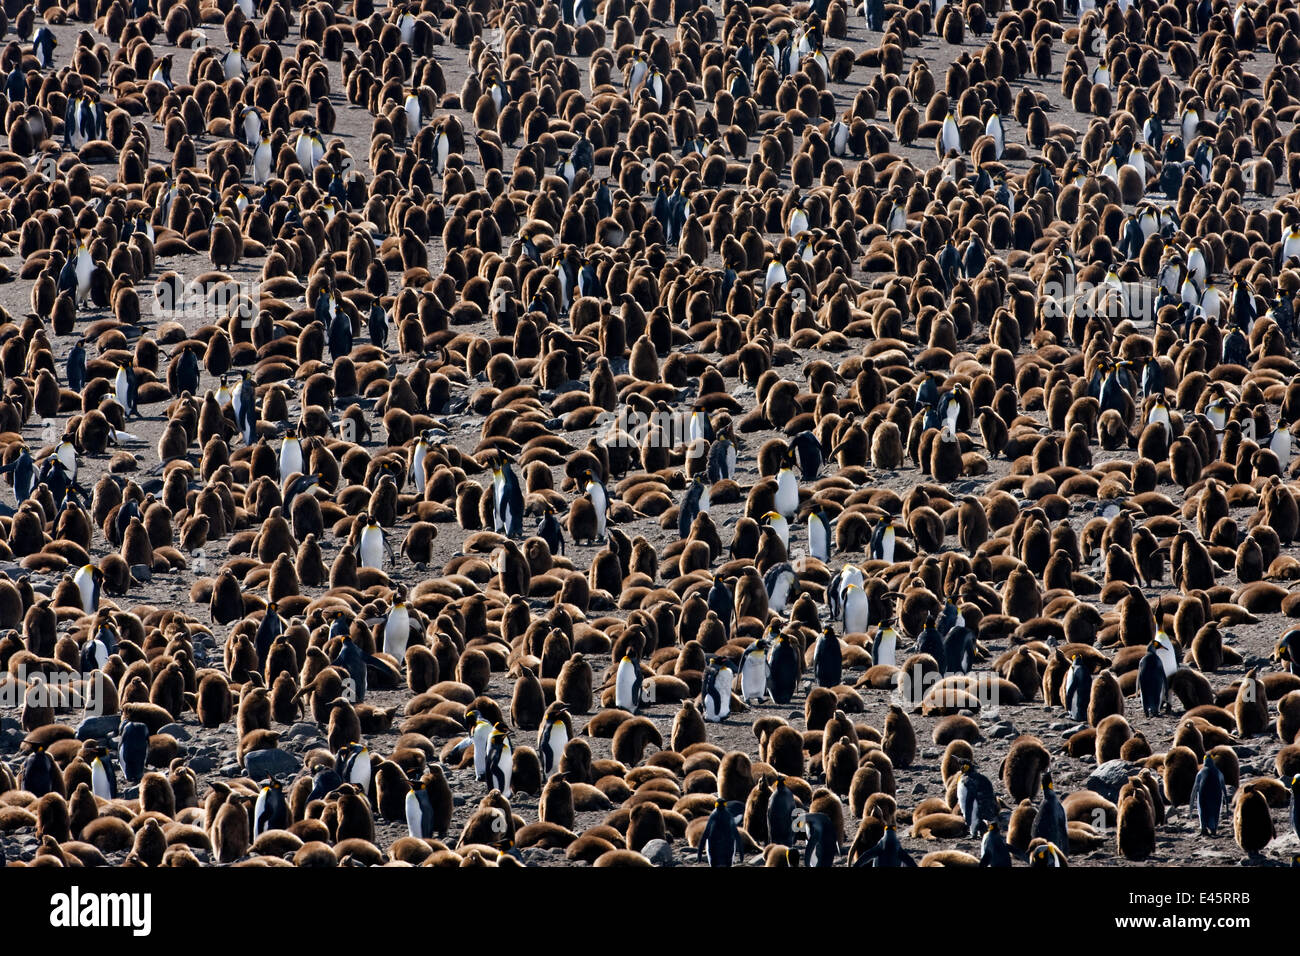 King penguin (Aptenodytes patagonicus) colony with adults and chicks. St Andrews Bay, South Georgia Island - Stock Image